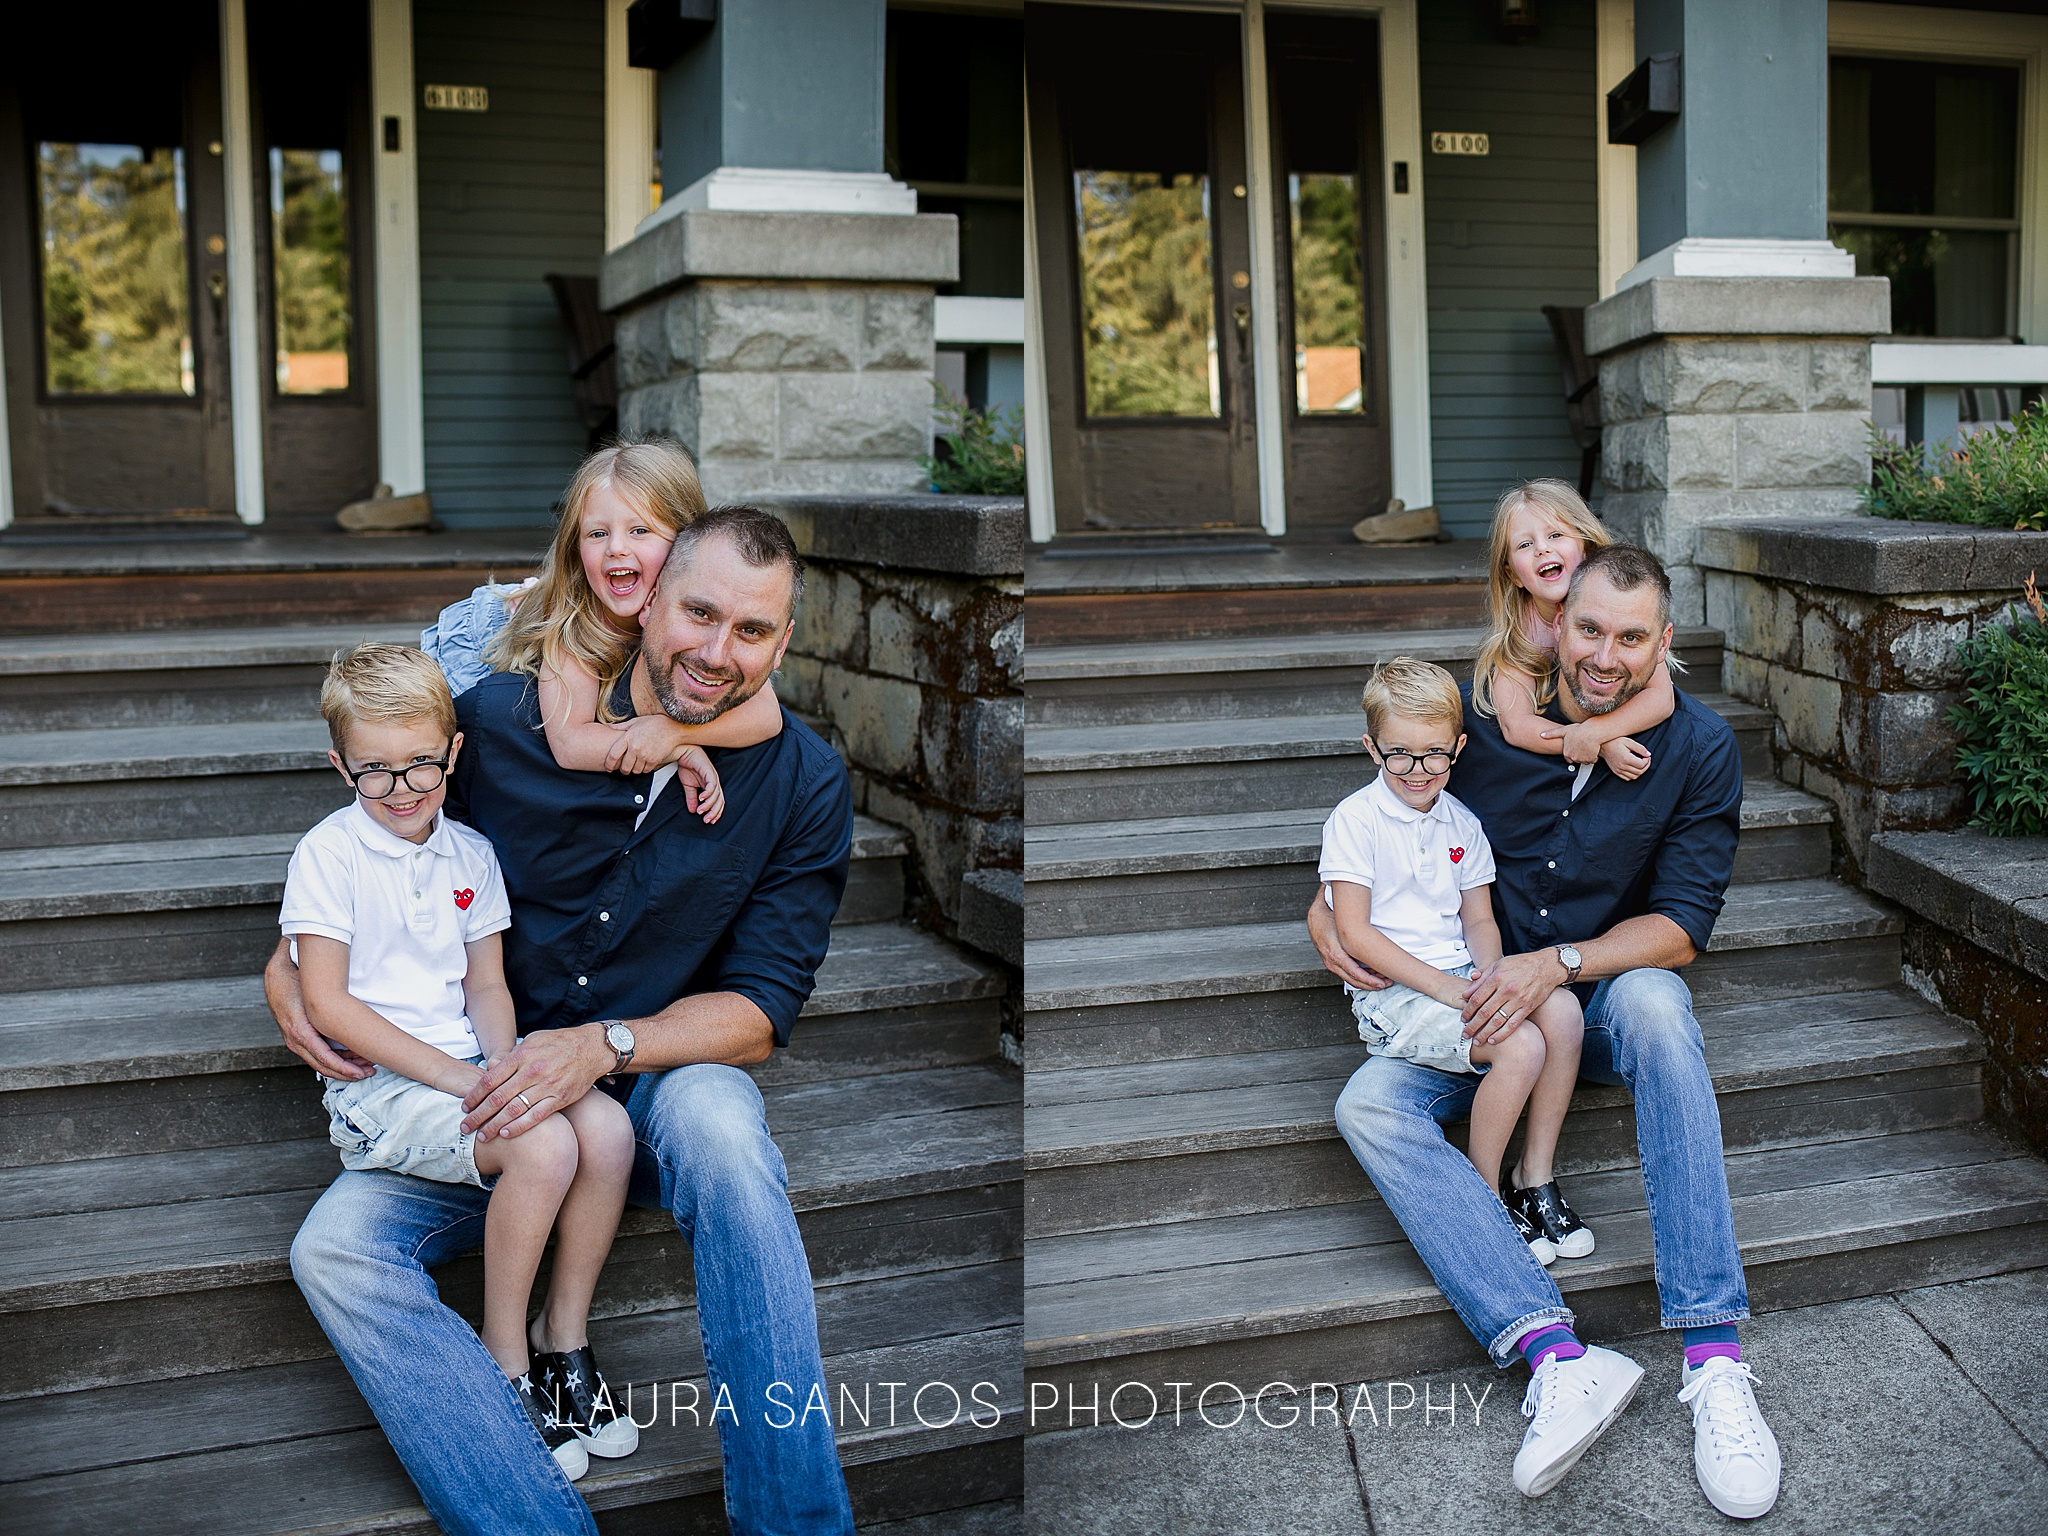 Laura Santos Photography Portland Oregon Family Photographer_1187.jpg